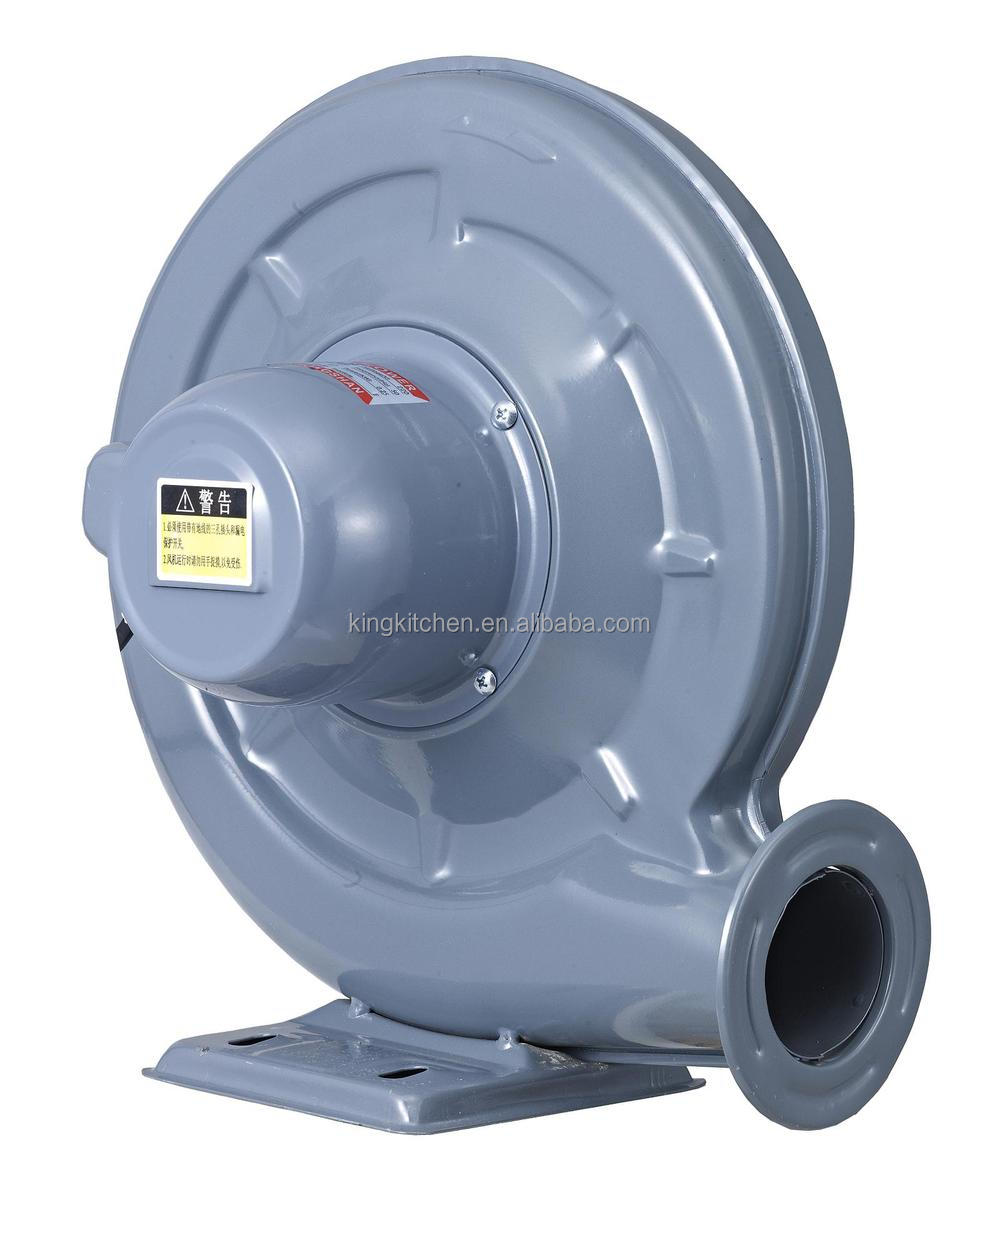 Air Blower Work : Electrical blower fan air new style small ac